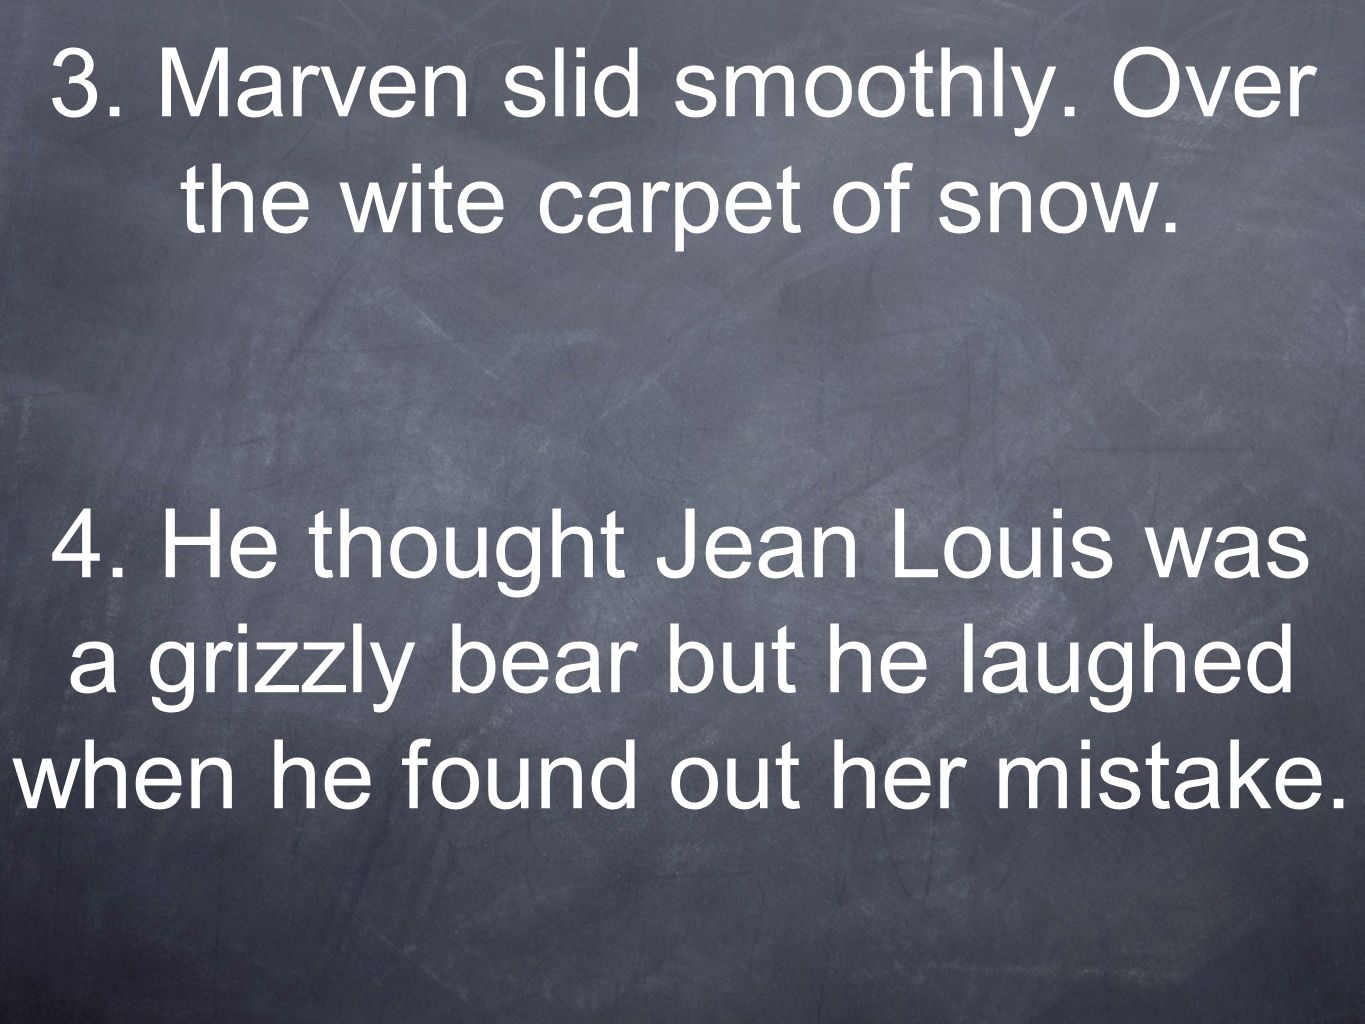 3. Marven slid smoothly. Over the wite carpet of snow.